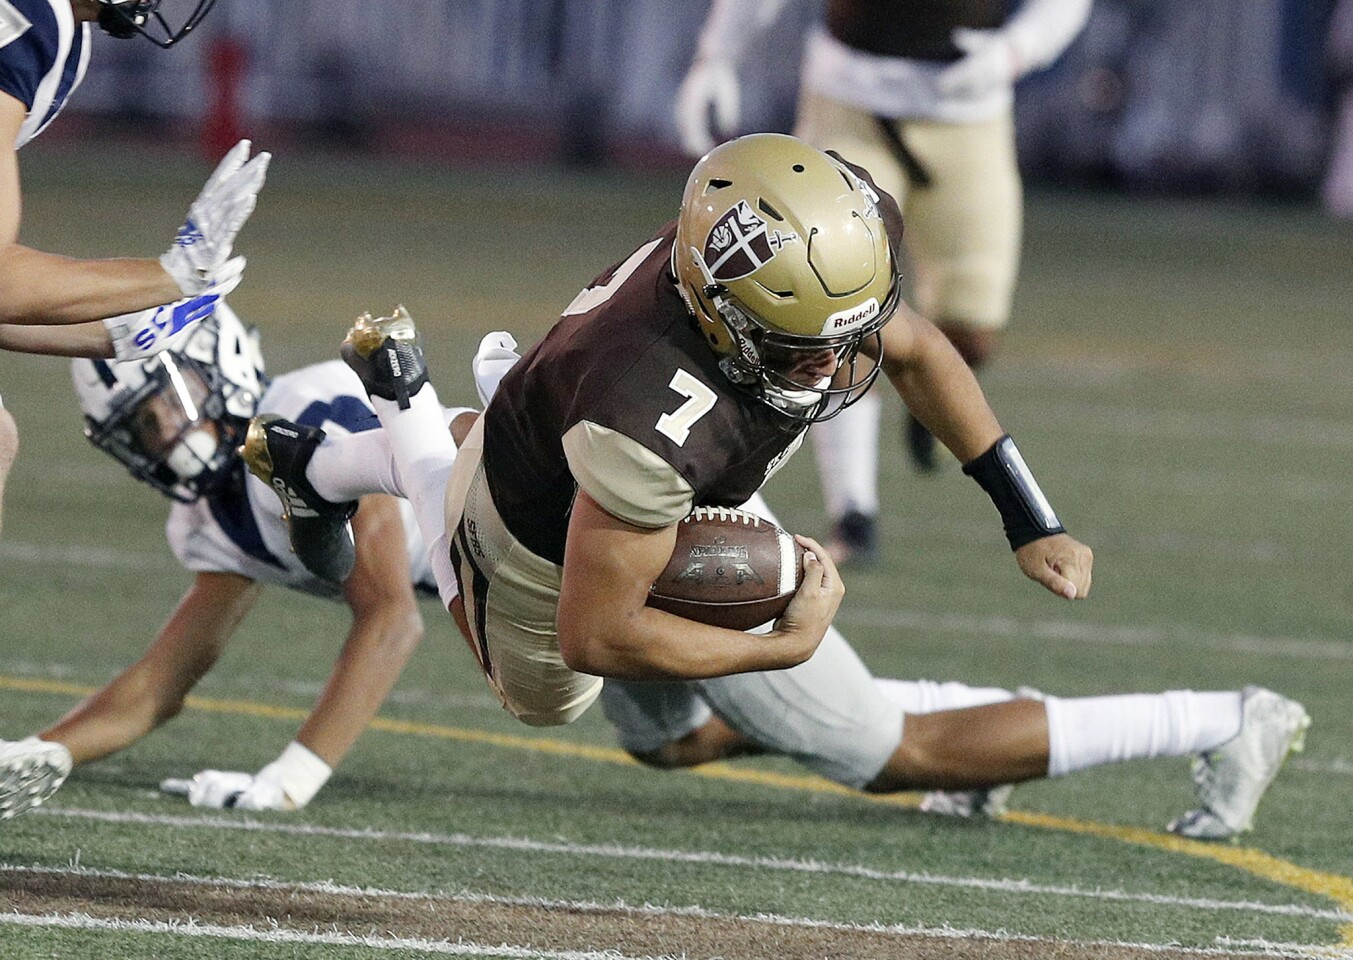 Photo Gallery: St. Francis vs. Saugus in non-league home football game